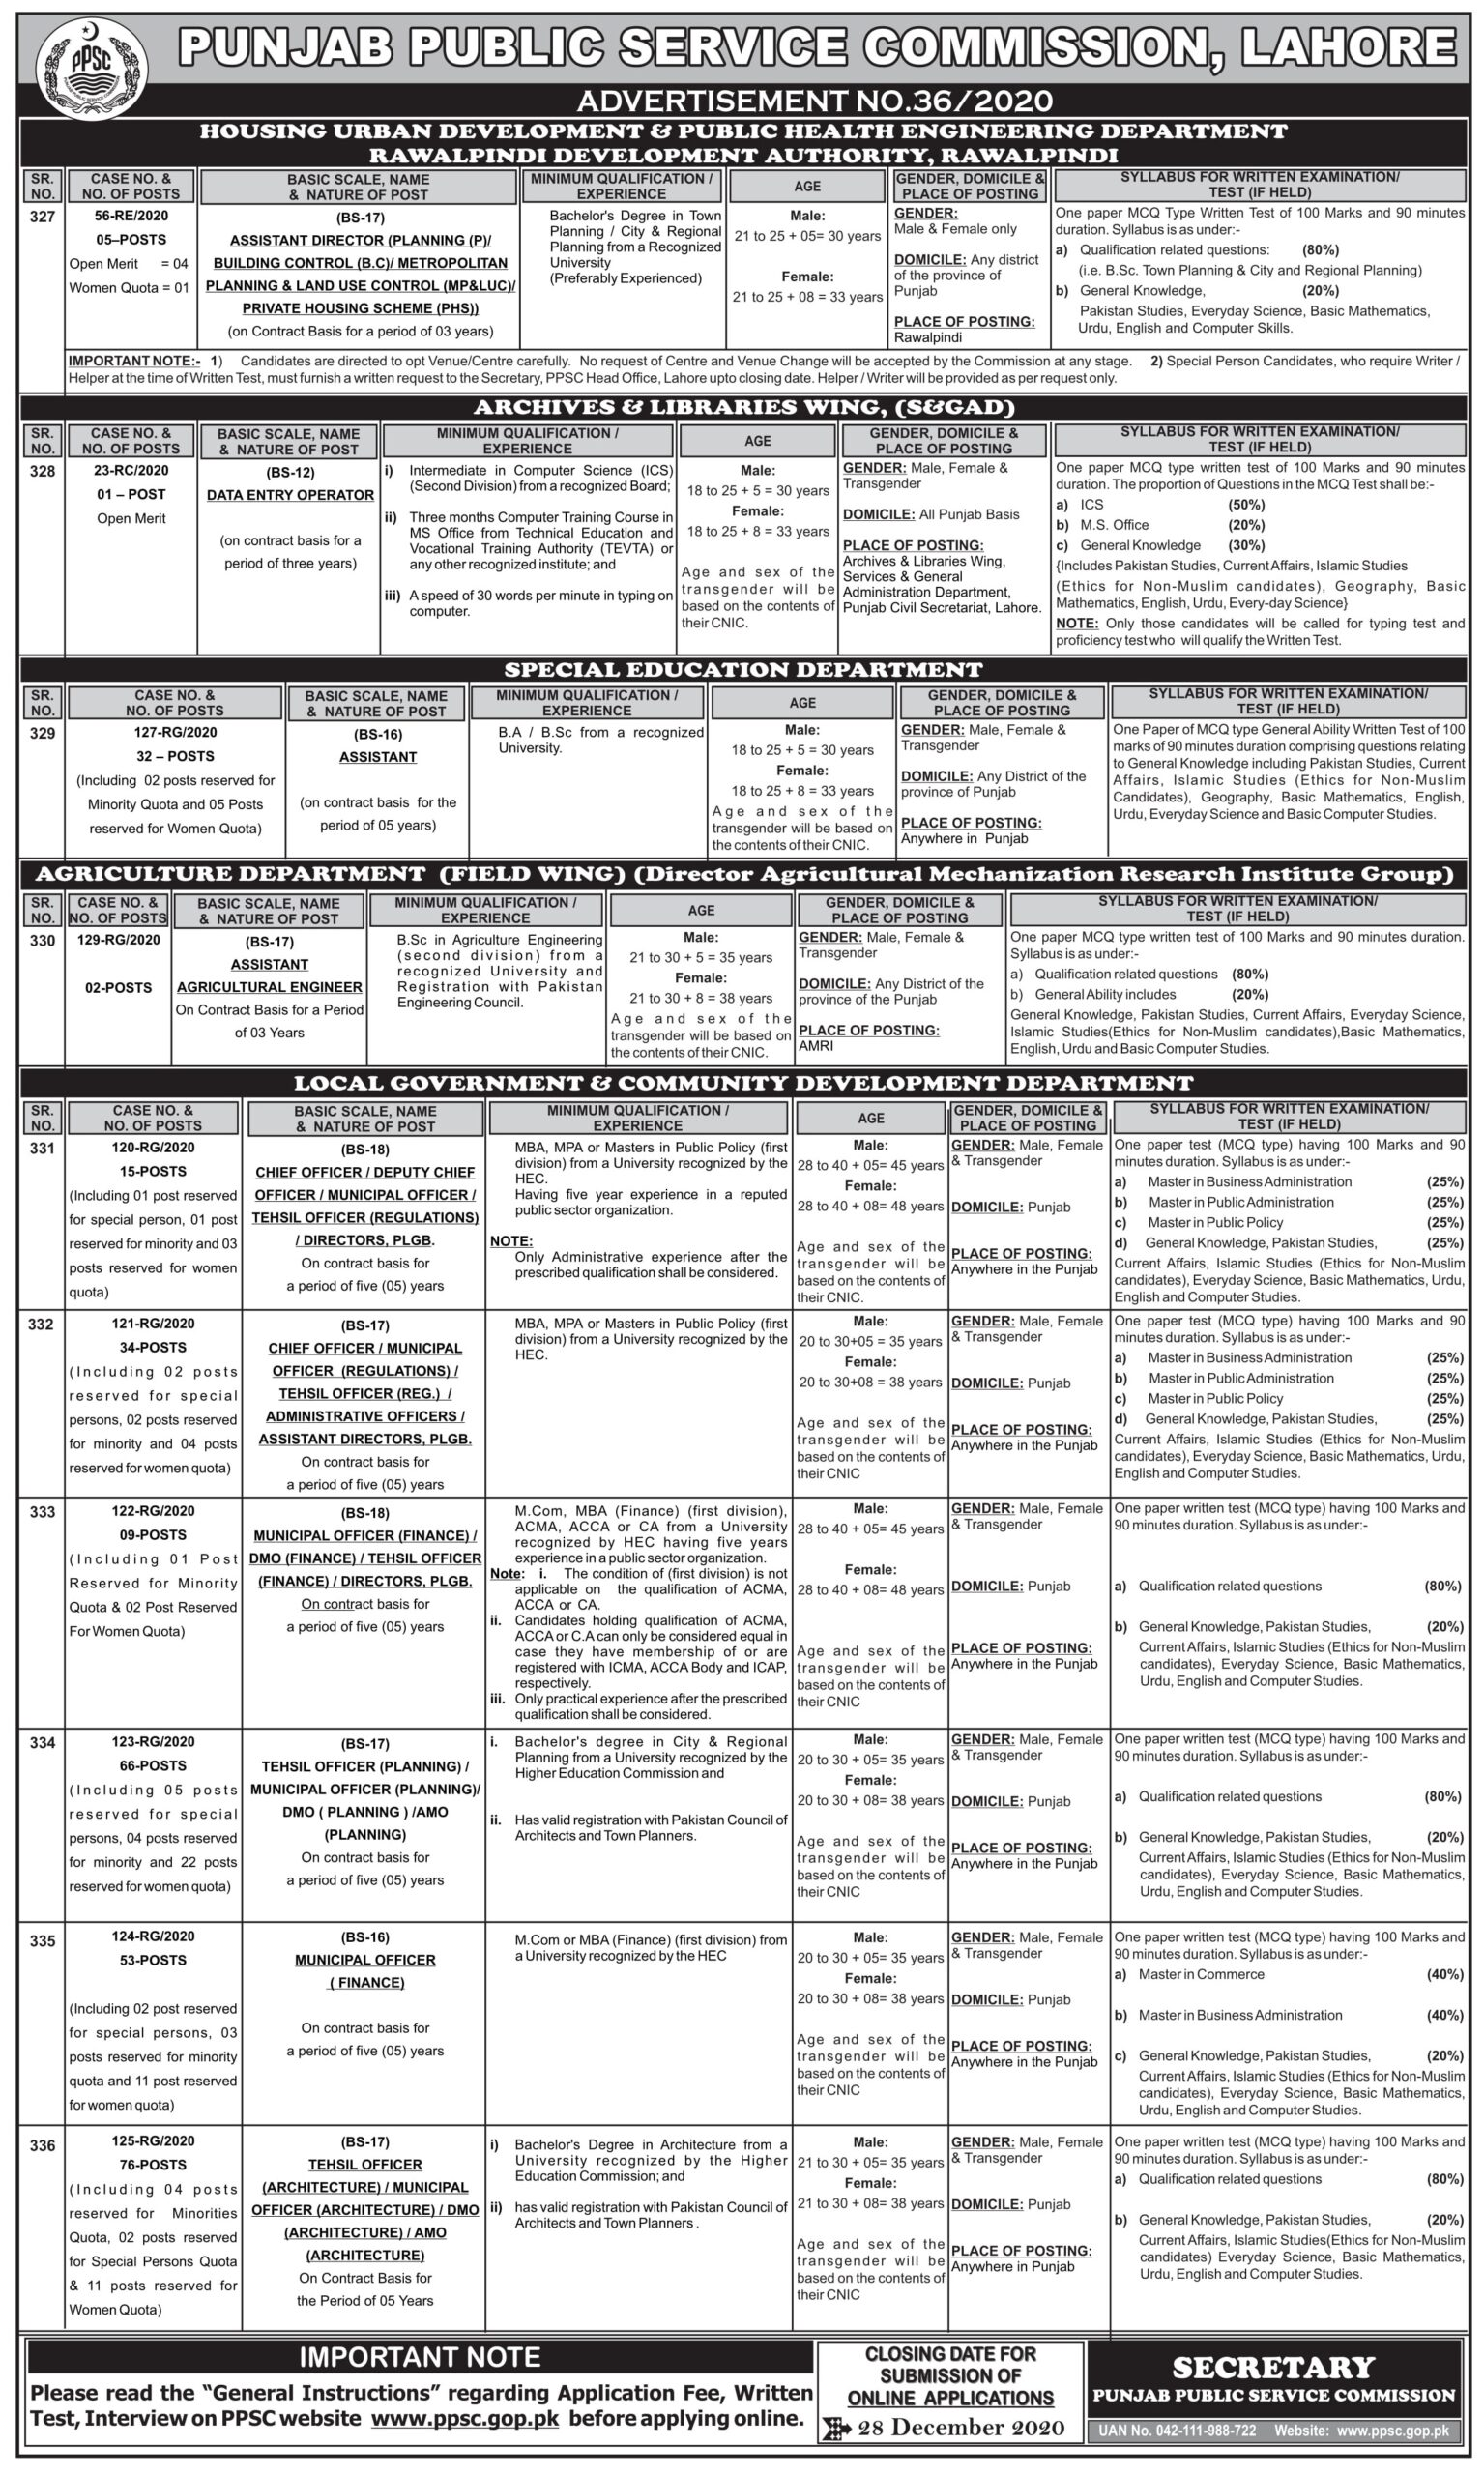 PPSC Advertisement No 36-2020-21 Advertisement